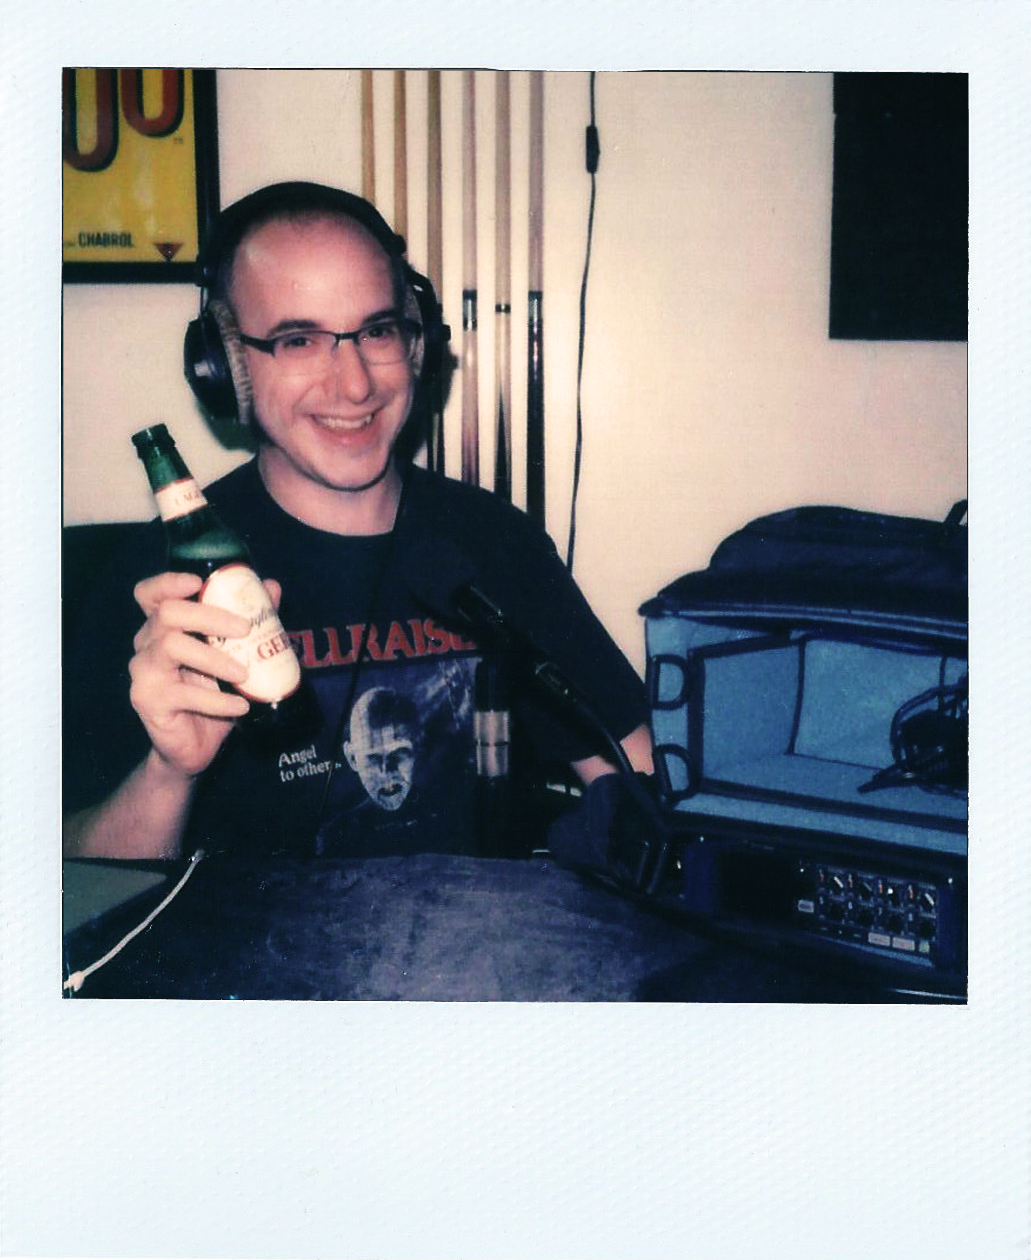 JUST AL - Is his name Al? We're not sure, but what we do know is that he is a product of 80's slasher films and heavy metal. Since he's not quite Gen X and not quite Millennial, he considers himself a part of the Oregon Trail micro-generation. (He played Oregon Trail on the Mac II in school.) Al is a sound enthusiast and is the recordist for the show.